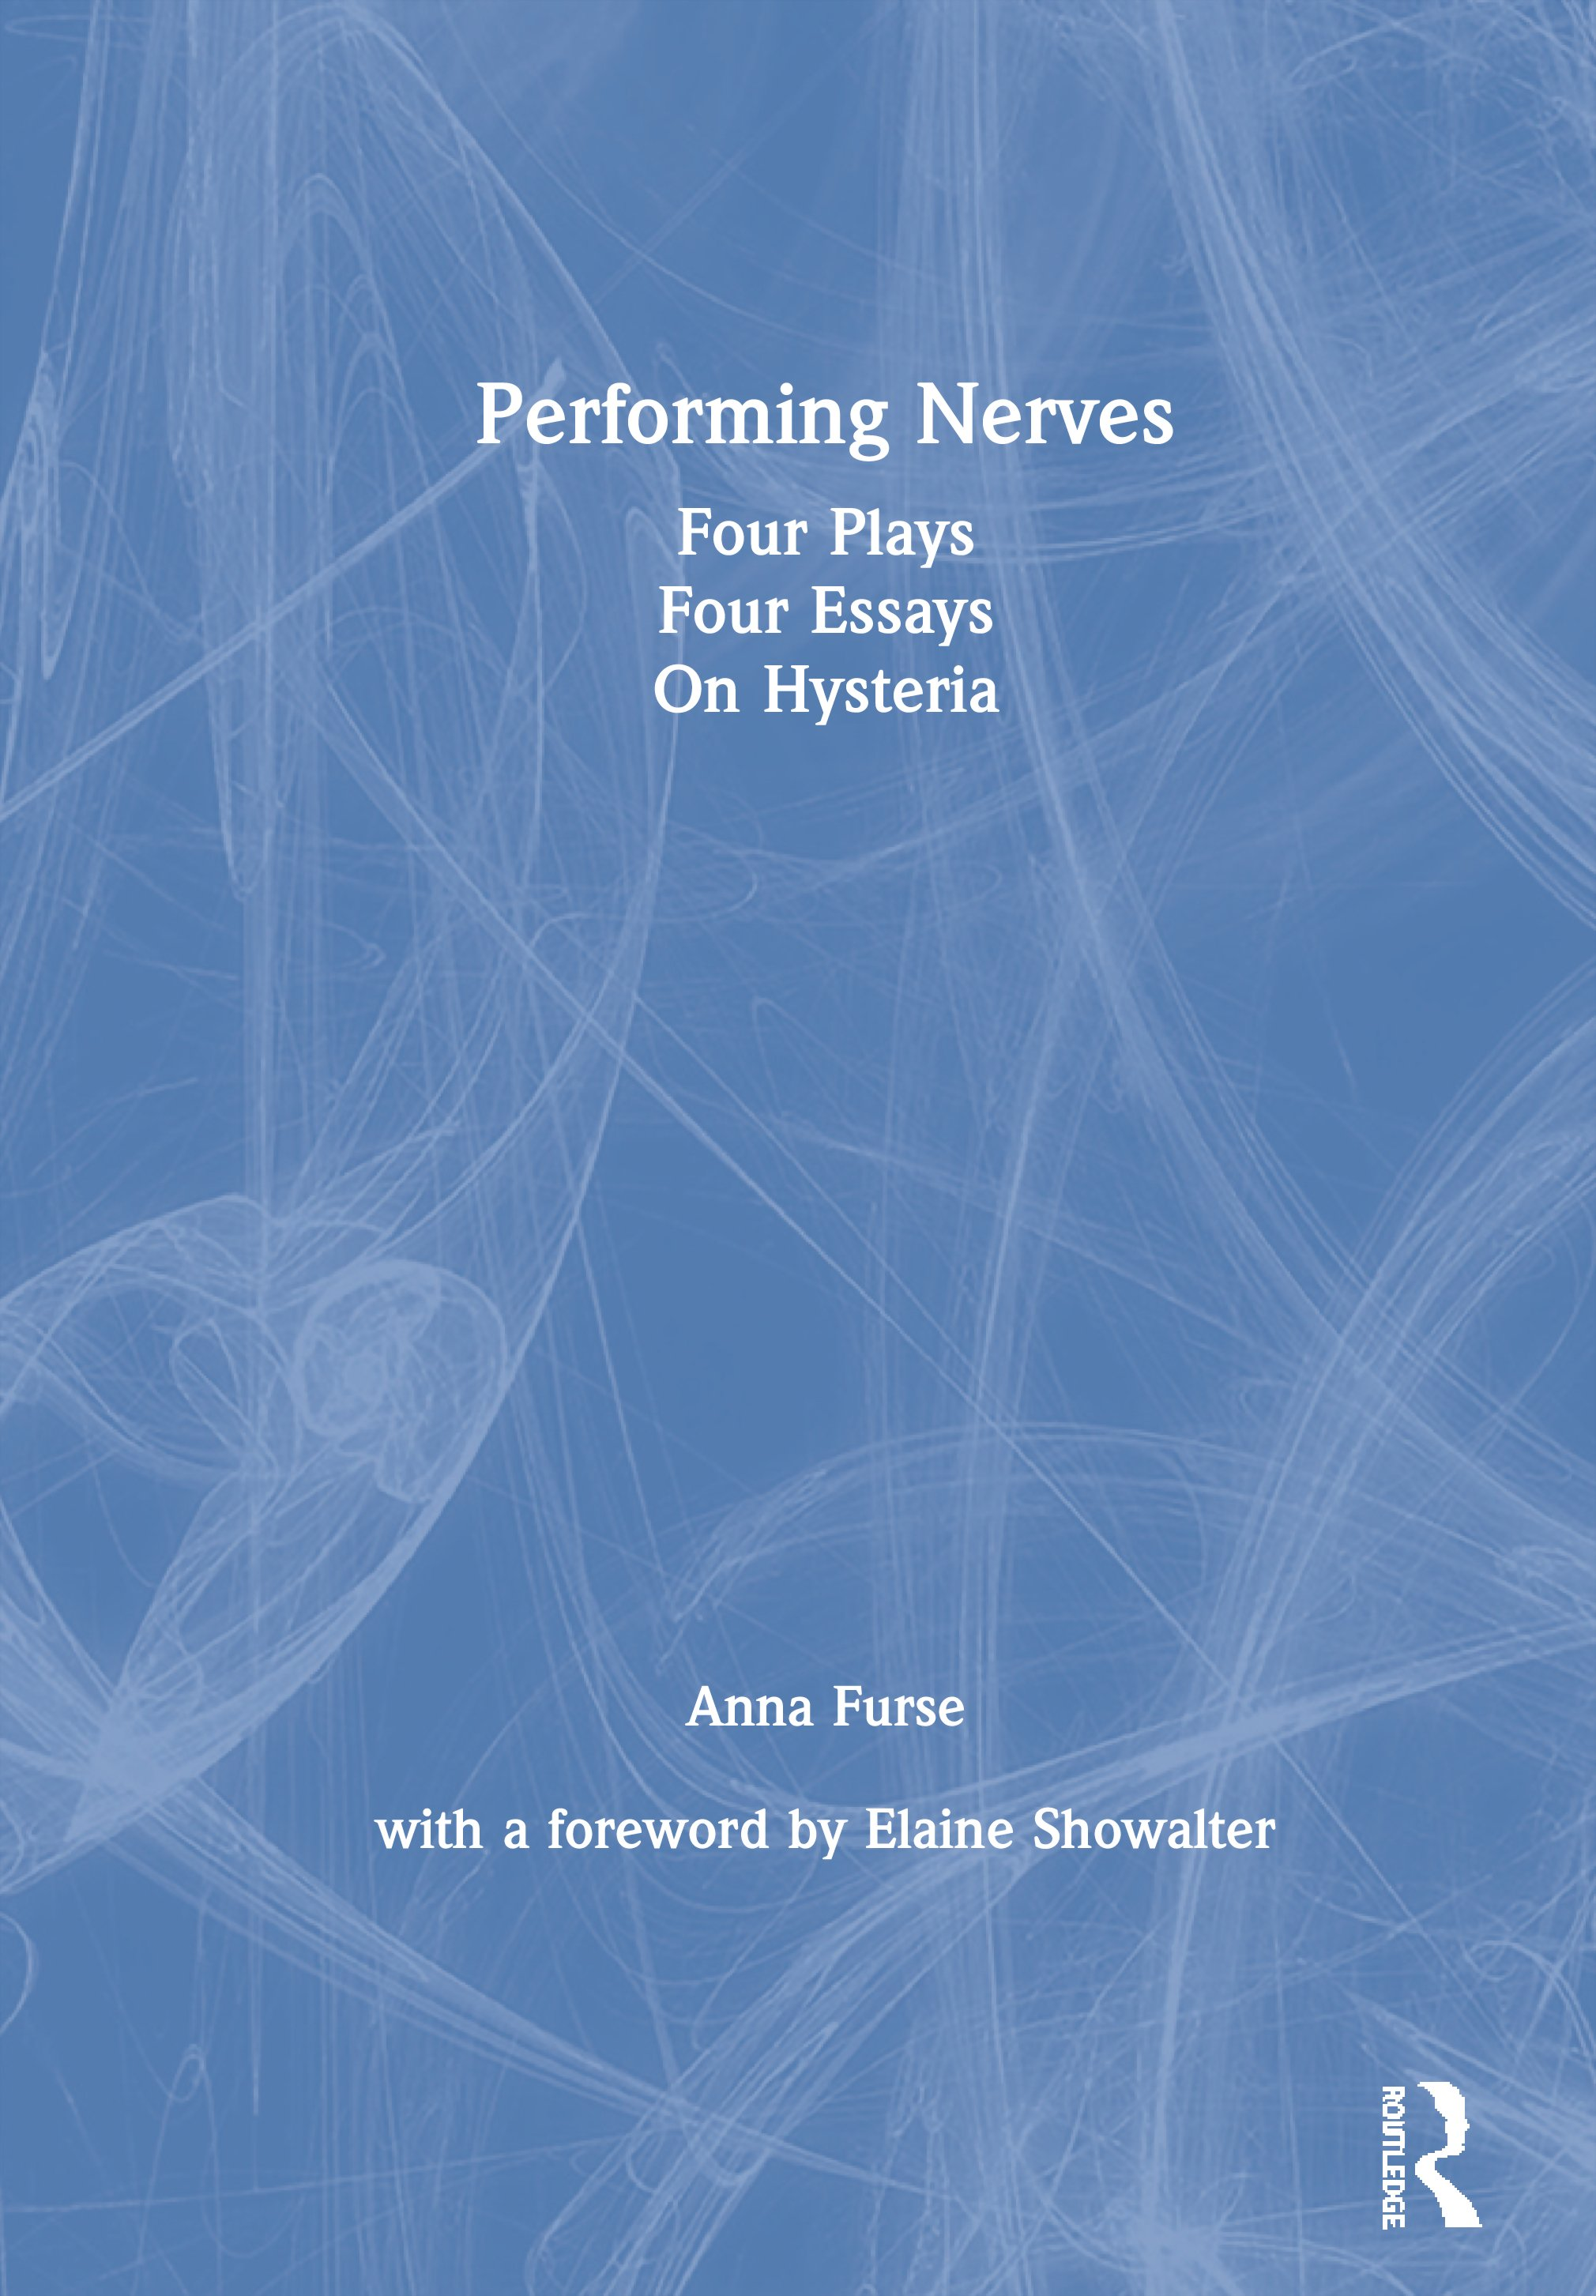 Performing Nerves: Four Plays, Four Essays, On Hysteria book cover